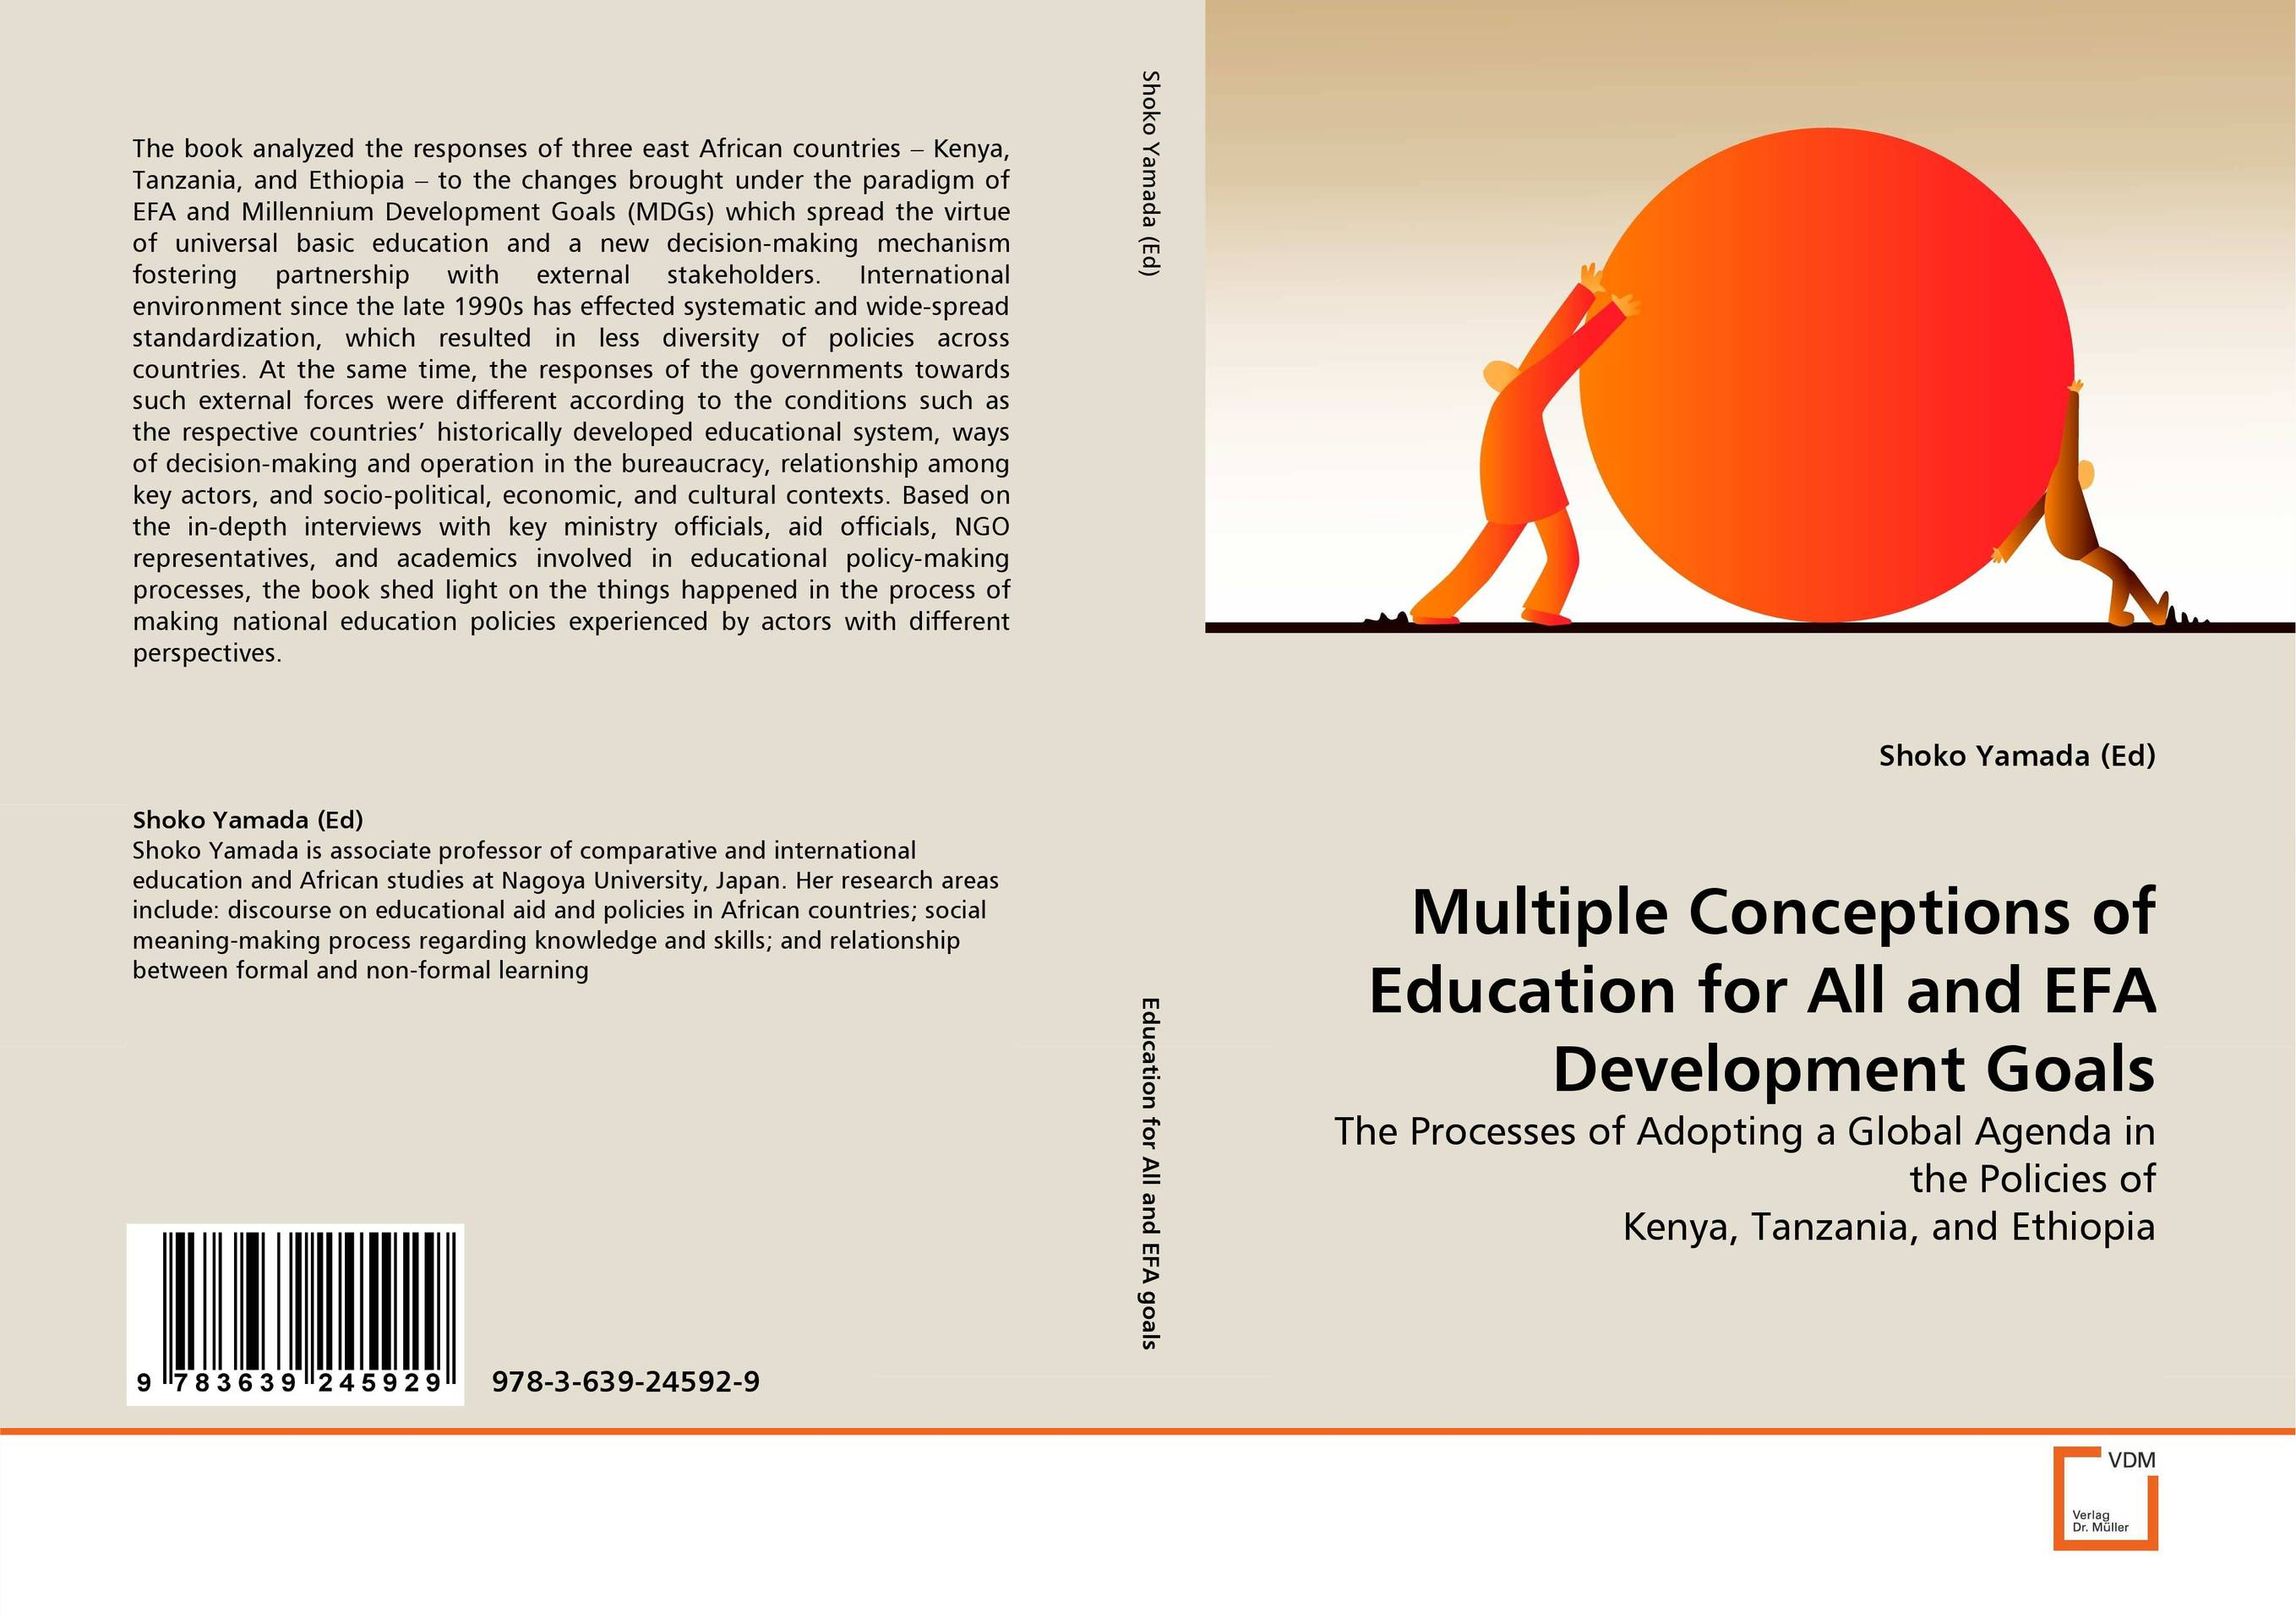 Multiple Conceptions of Education for All and EFA Development Goals ecosystems nexus millennium development goals